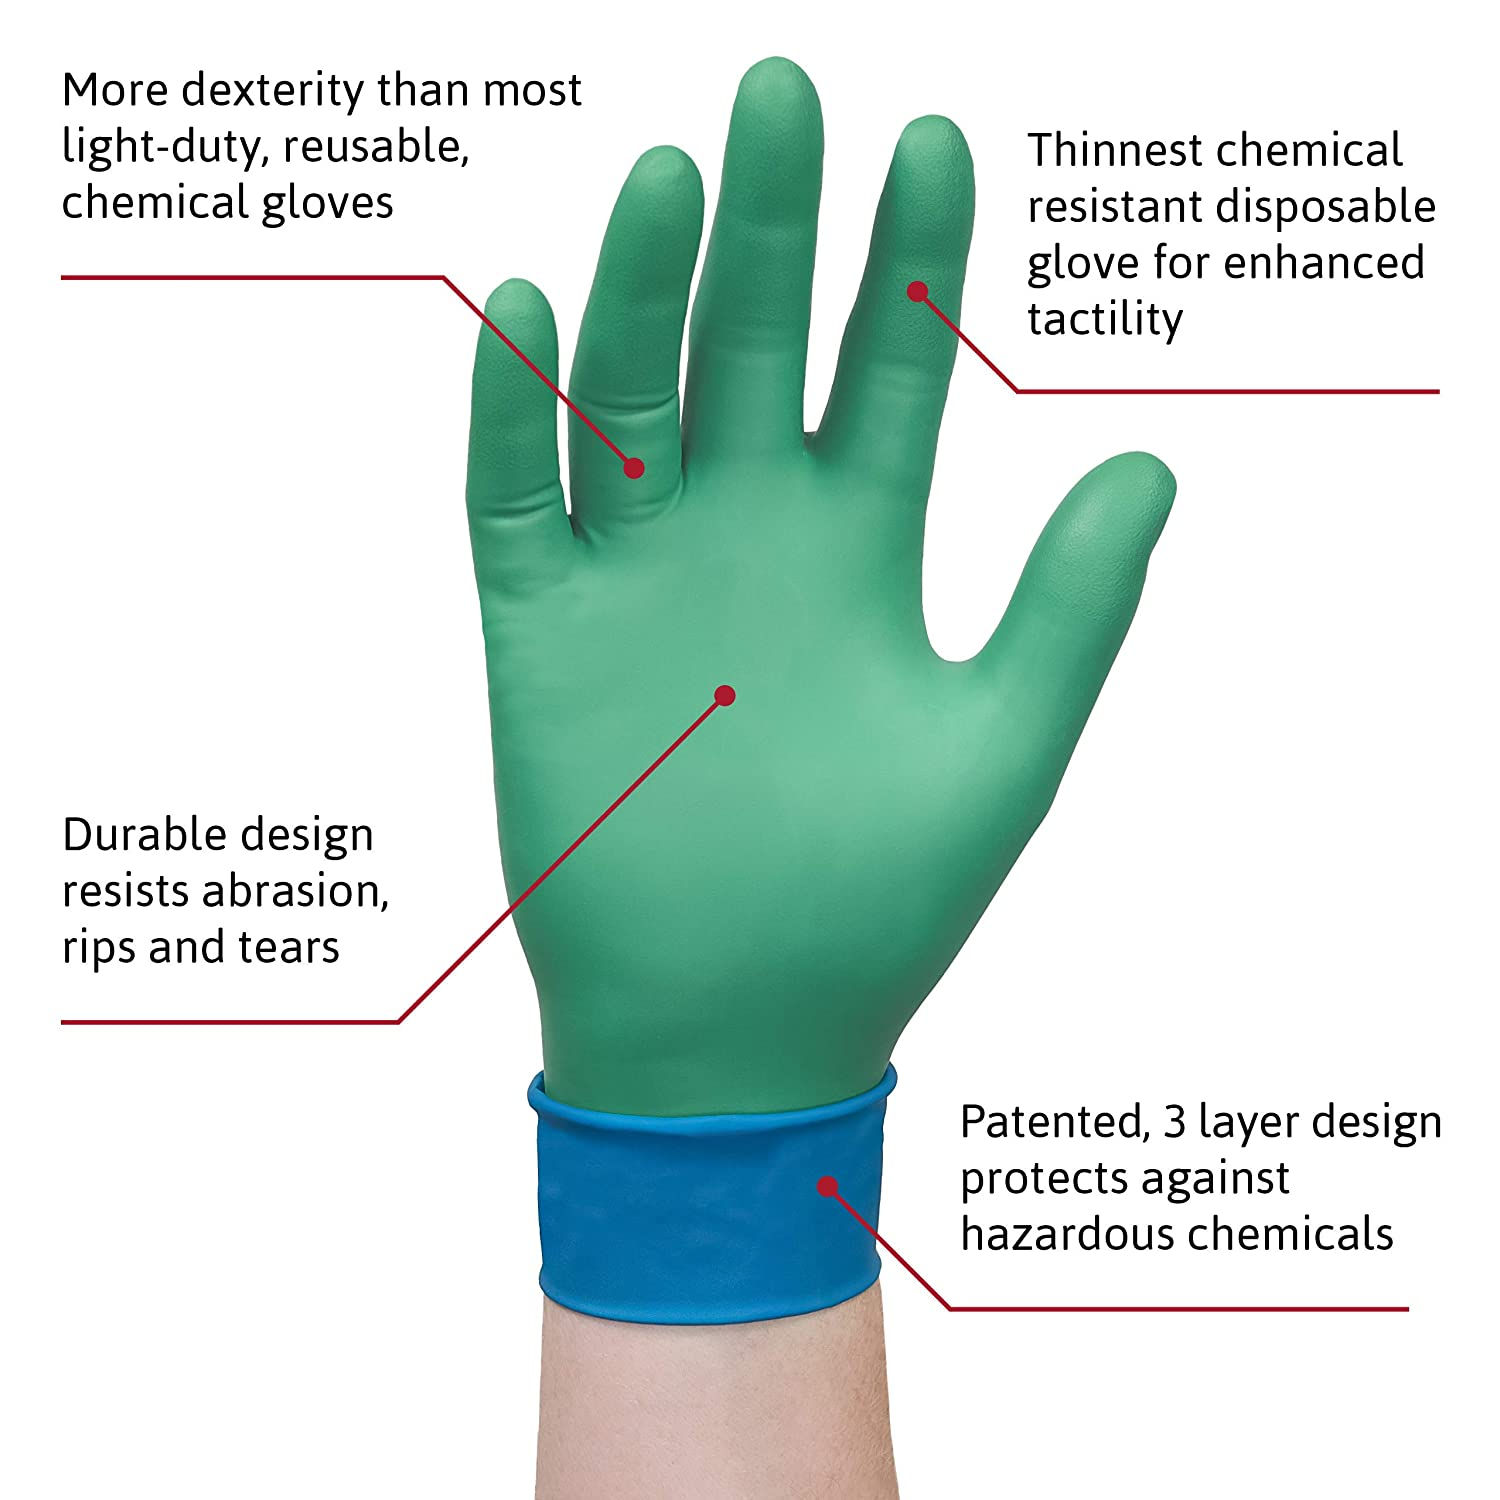 Size M Chemical Resistant Ansell Microflex 93-260 Disposable Gloves Mechanics and DIY use 6 Units Industrial Nitrile//Neoprene 7.5-8 Green